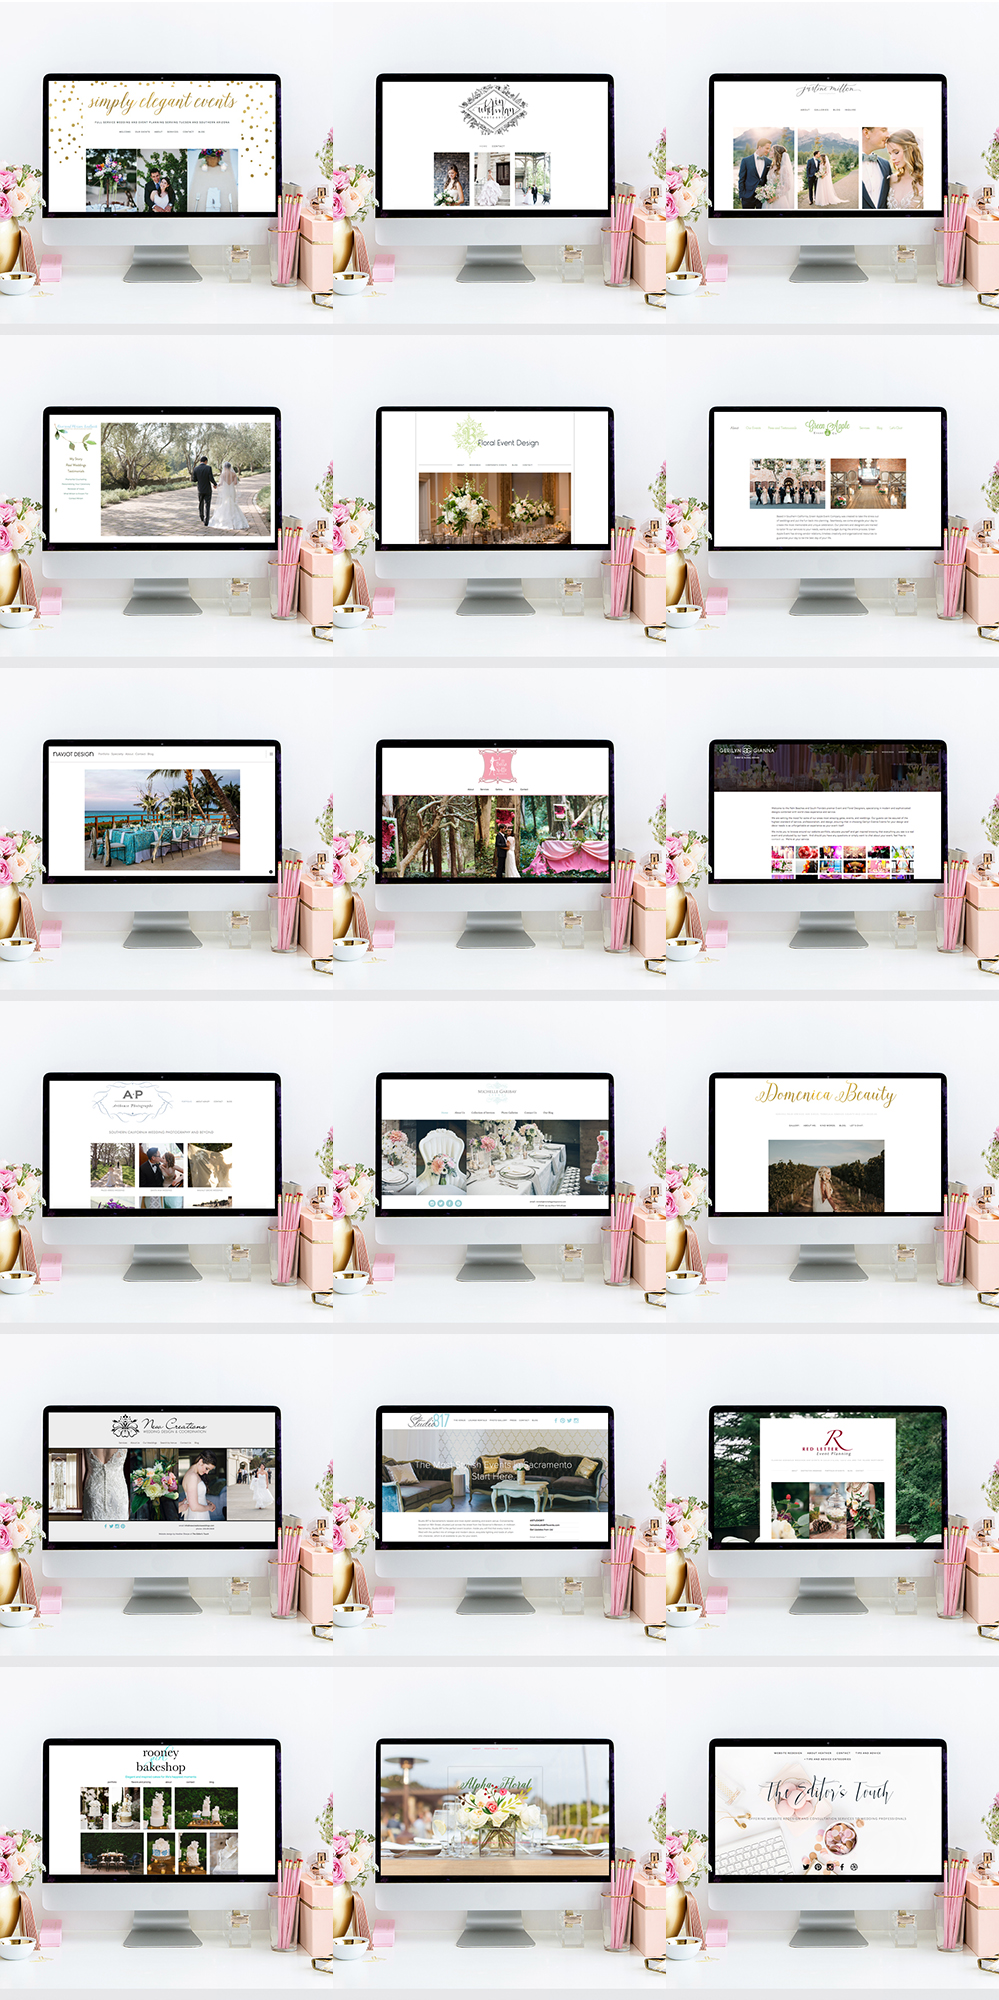 Website Design Using Squarespace | Heather Sharpe | The Editor's Touch